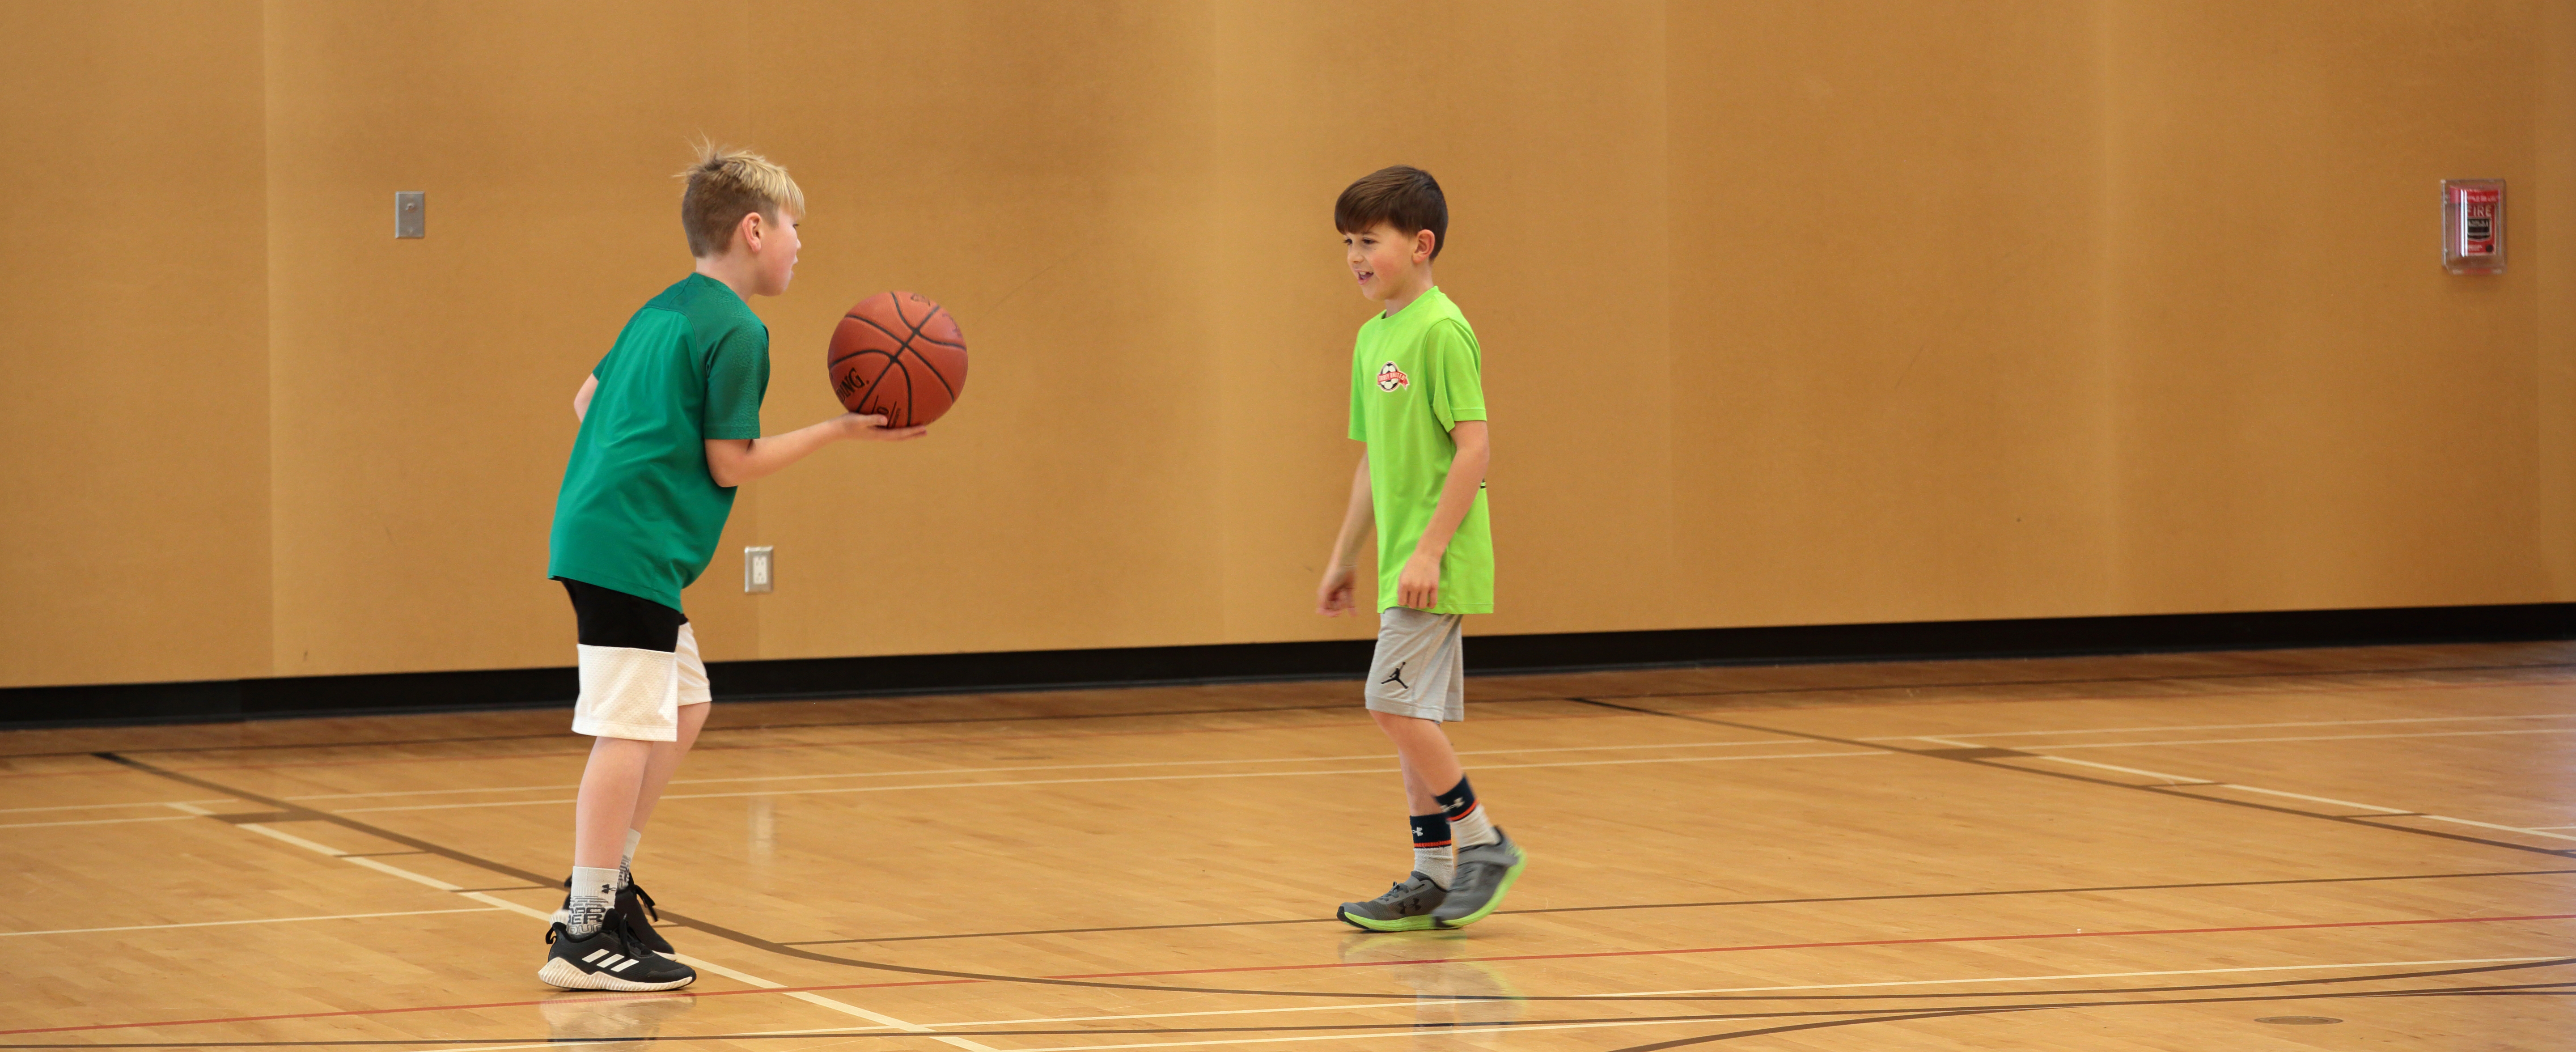 Two boys playing basketball in a gym